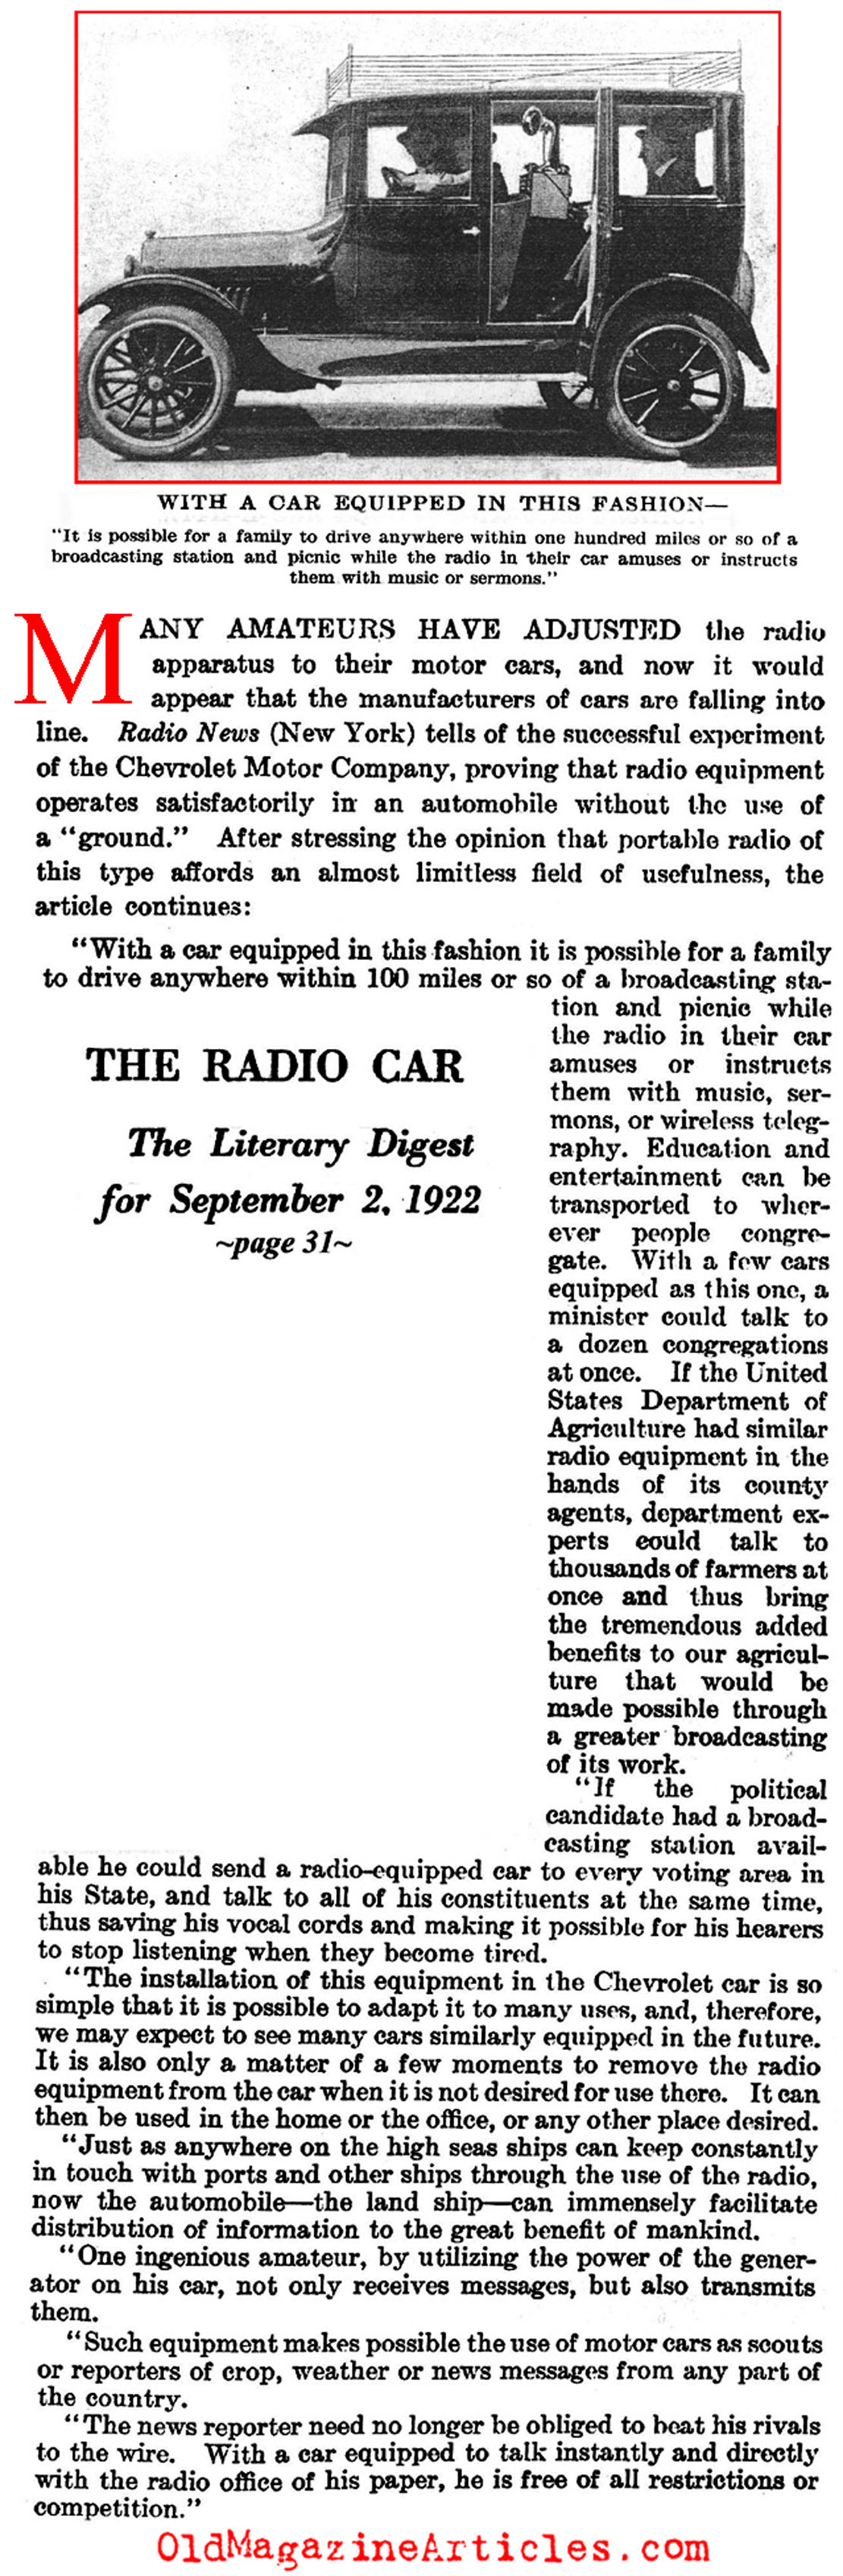 The First Car Radio (Literary Digest, 1922)